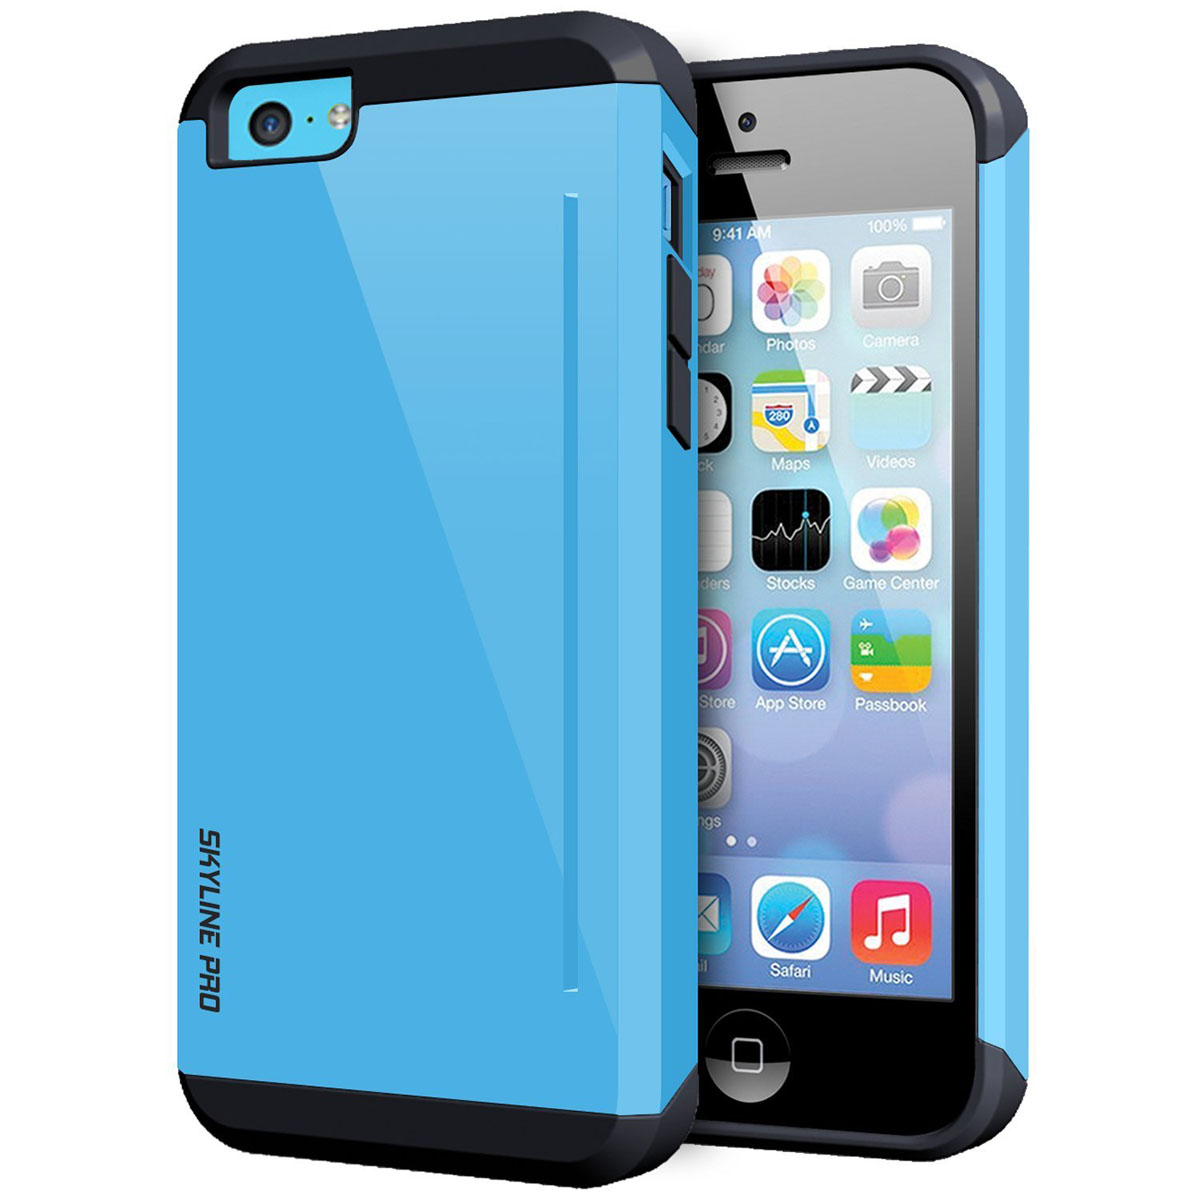 Case for iPhone 5C